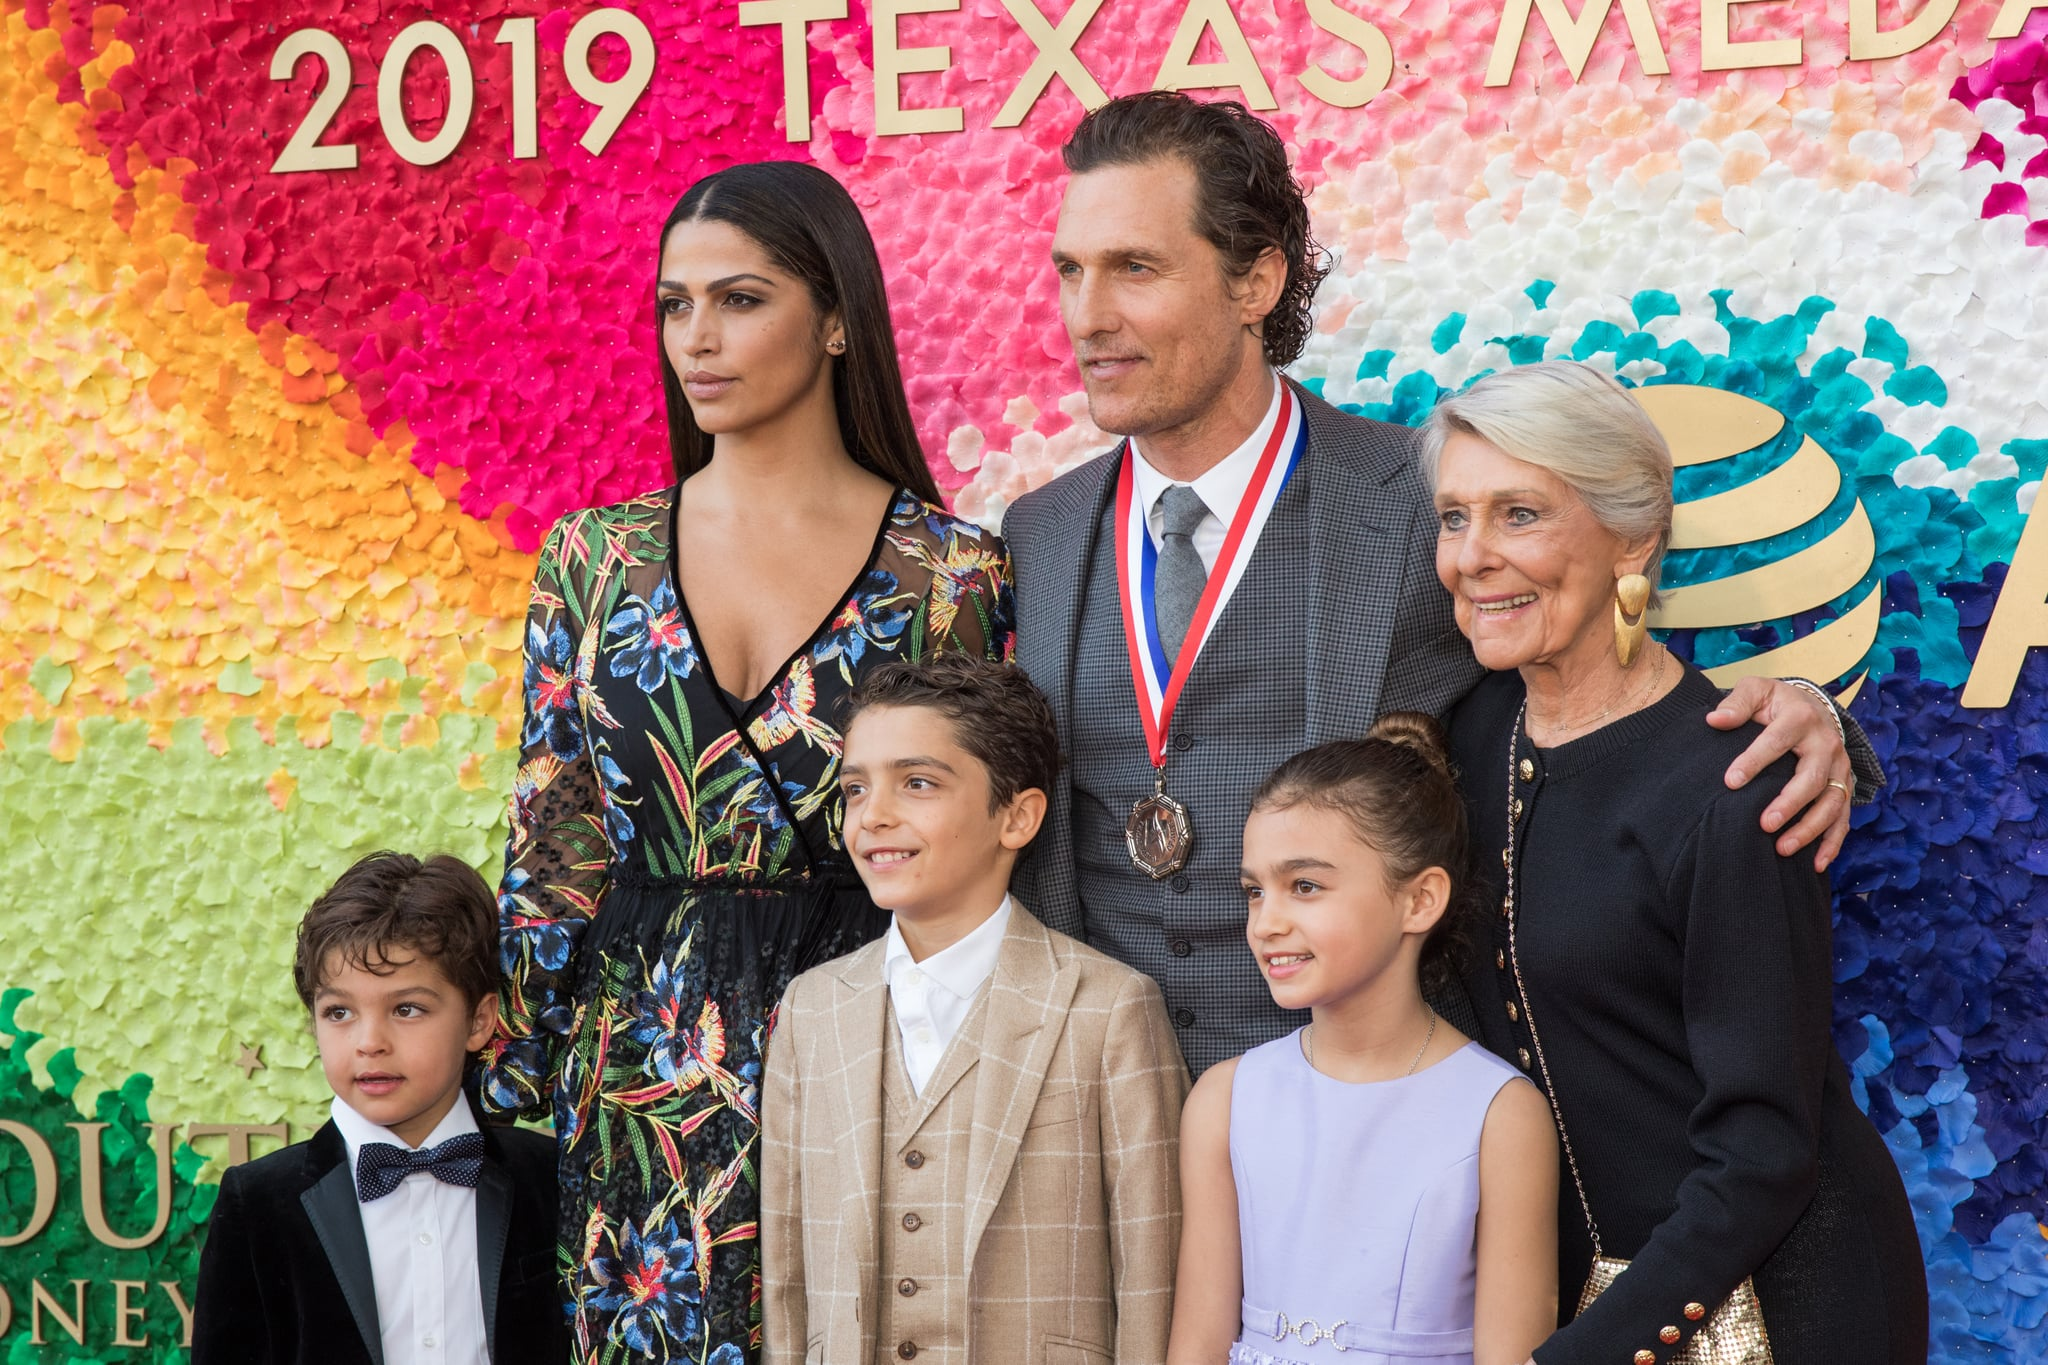 AUSTIN, TEXAS - FEBRUARY 27: (L-R) Livingston Alves McConaughey, Camila Alves, Levi Alves McConaughey, honouree Matthew McConaughey, Vida Alves McConaughey, and Kay McConaughey attend the 2019 Texas Medal Of Arts Awards at the Long Centre for the Performing Arts on February 27, 2019 in Austin, Texas. (Photo by Rick Kern/WireImage)